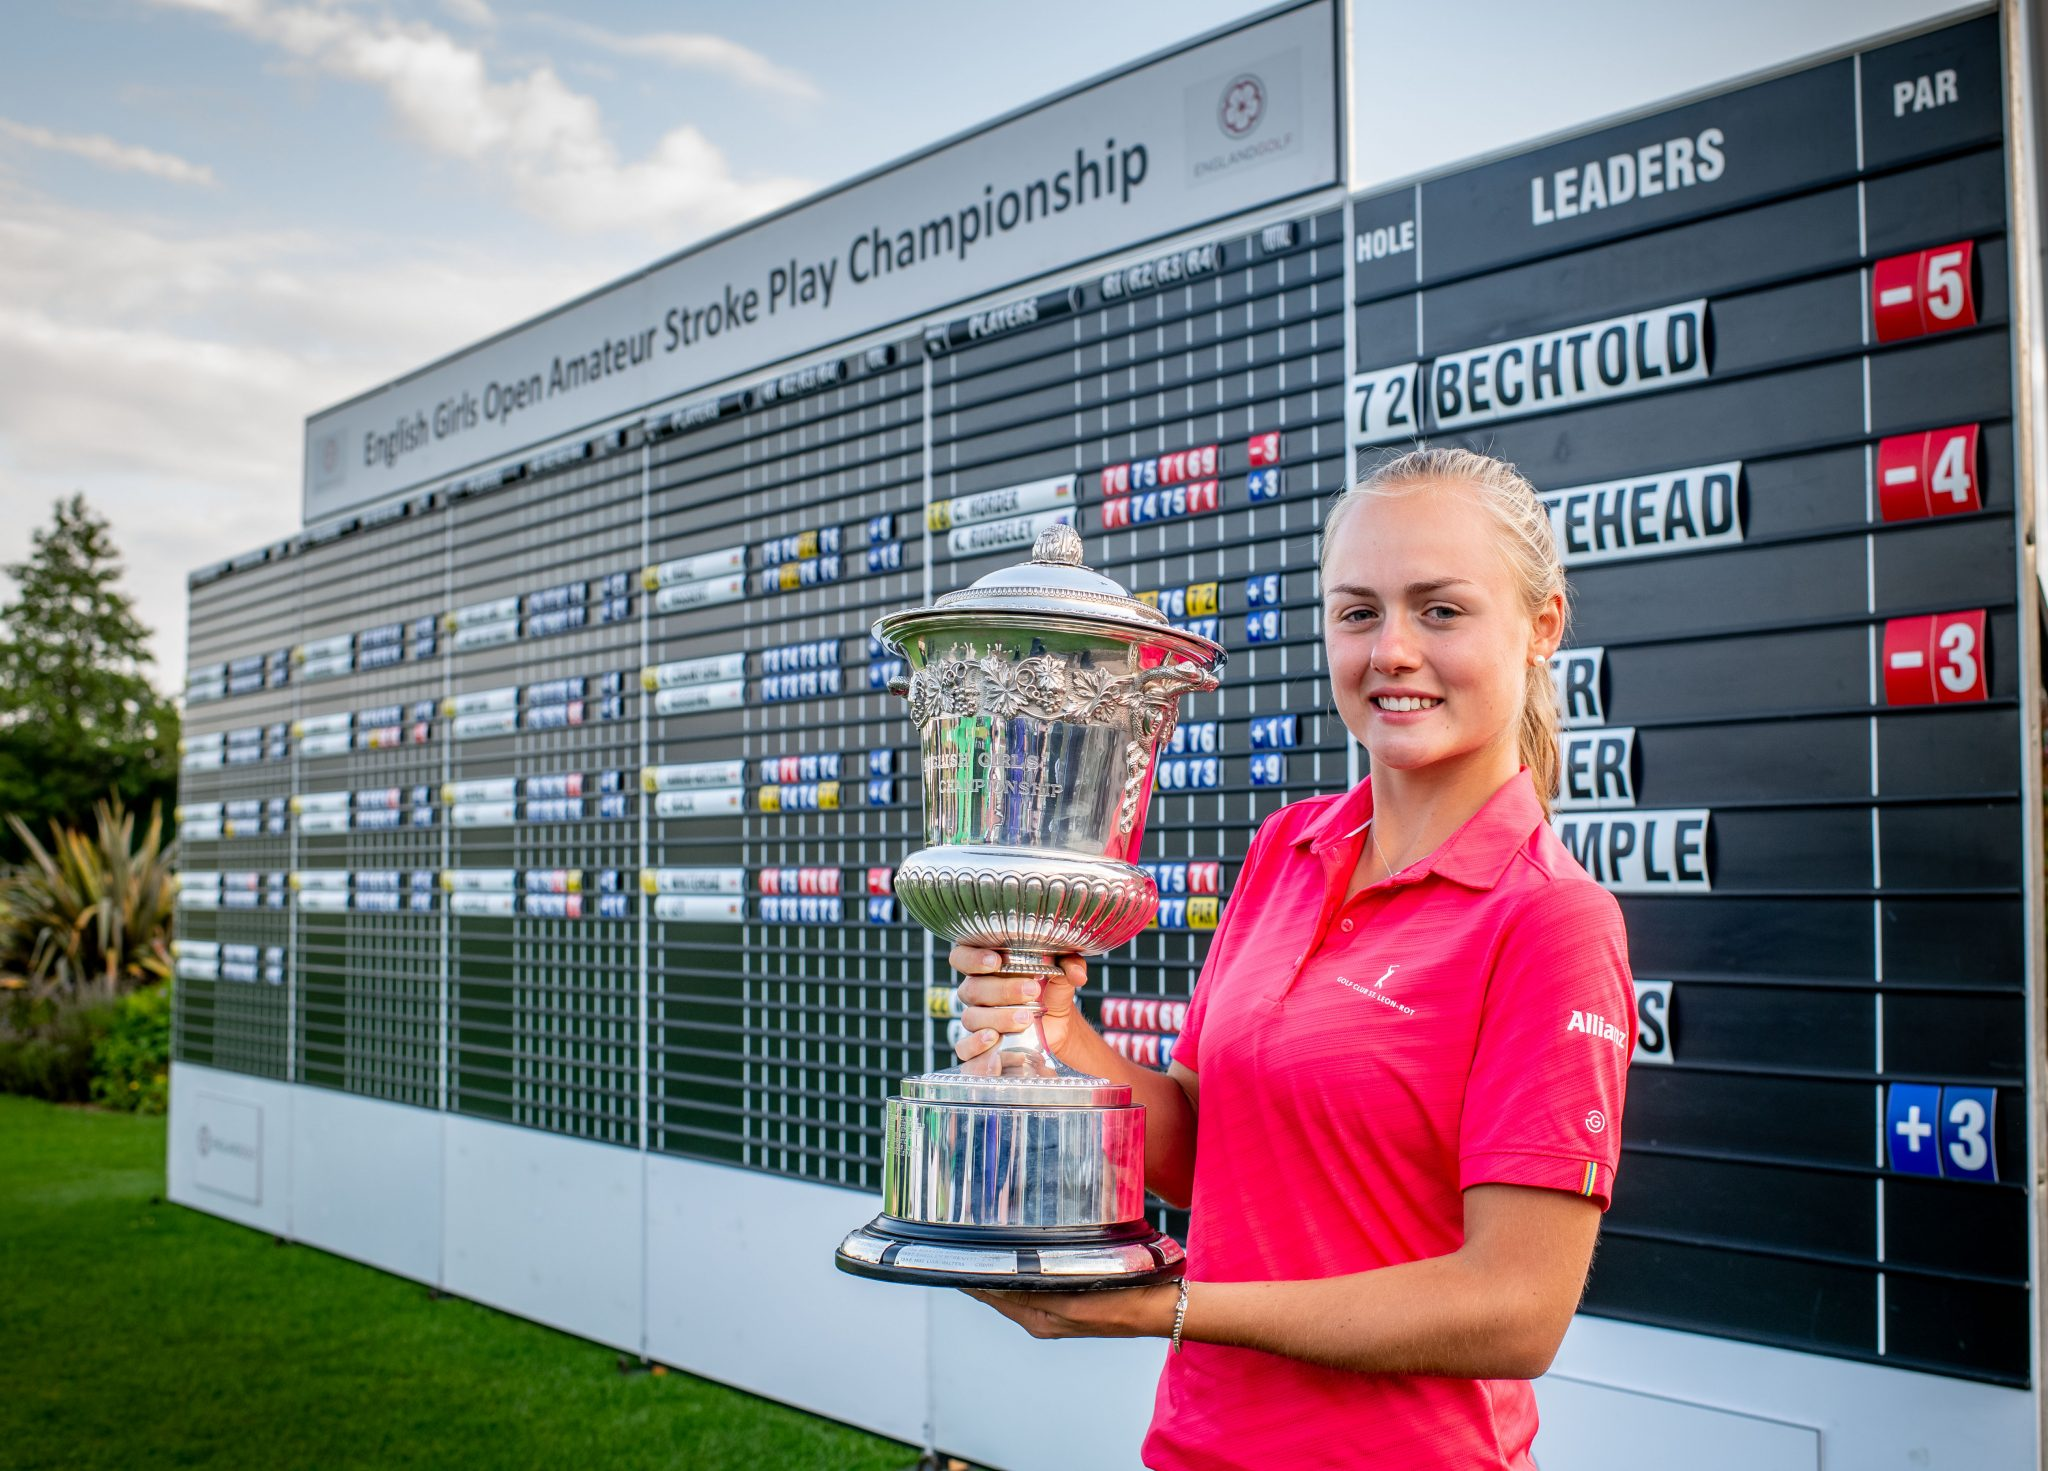 Germany's Marie takes home Girls' Open title